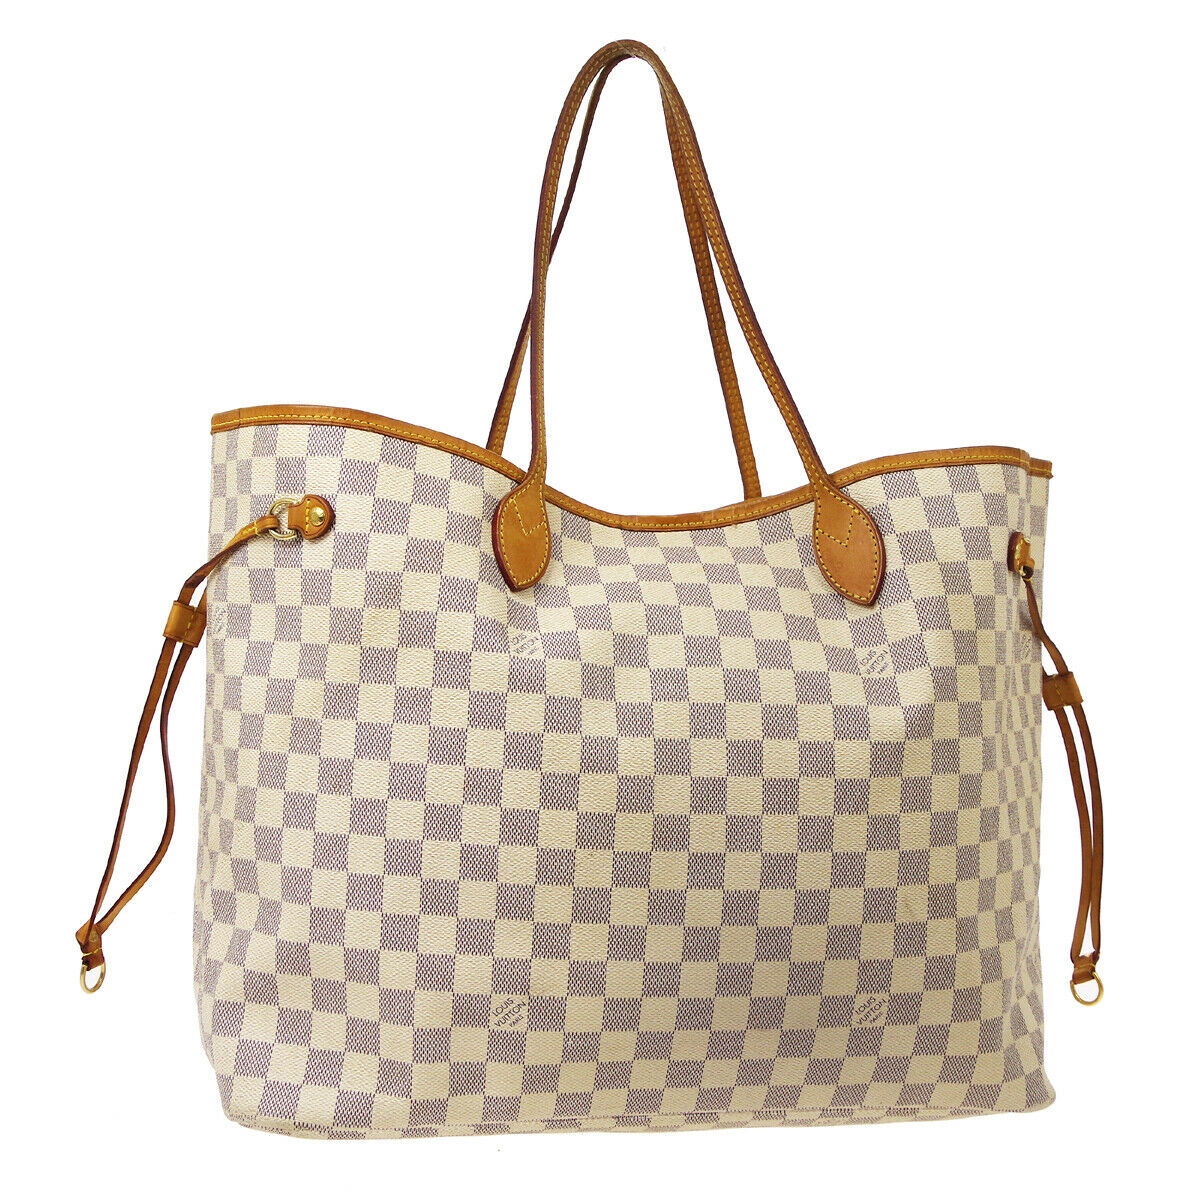 Louis Vuitton Neverfull Damier Azur Gm White Canvas Tote